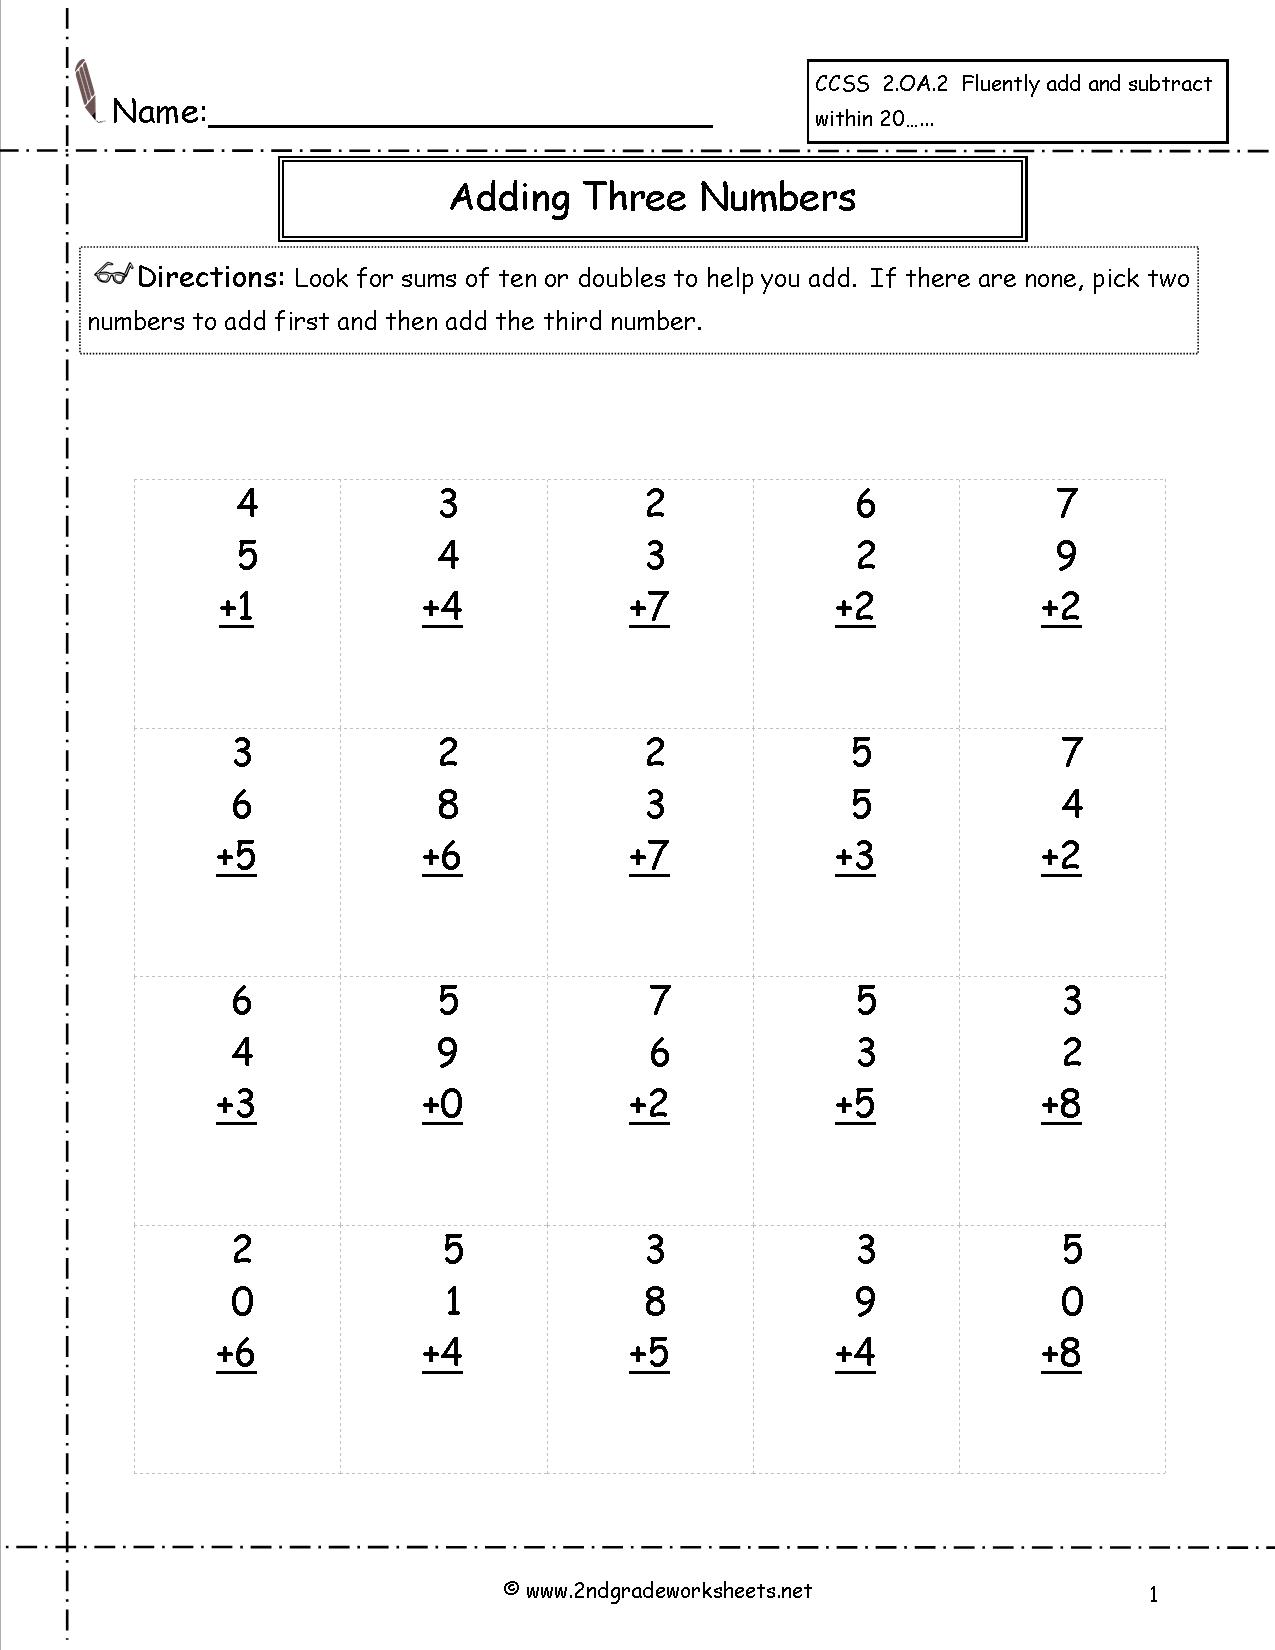 7 Best Images Of Adding 3 Numbers Worksheets Printable